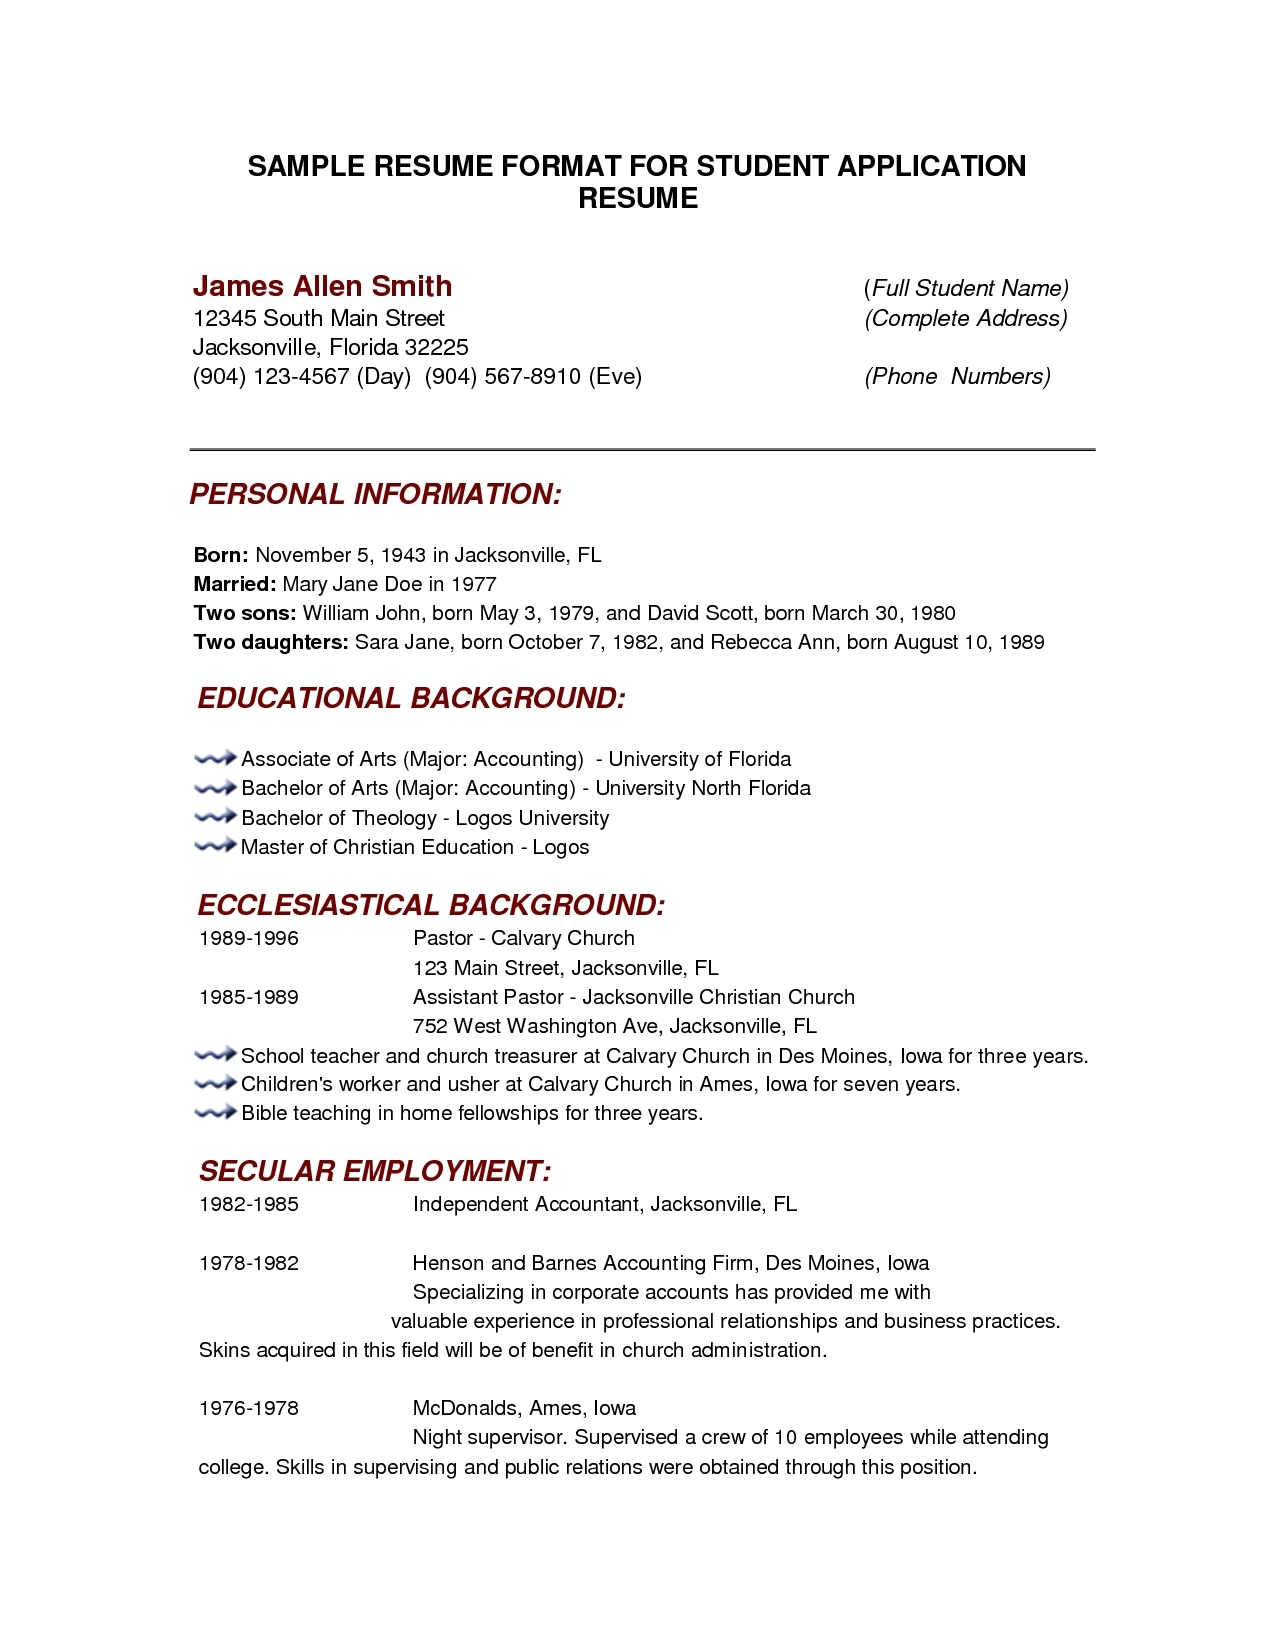 Sample Curriculum Vitae Format For Students